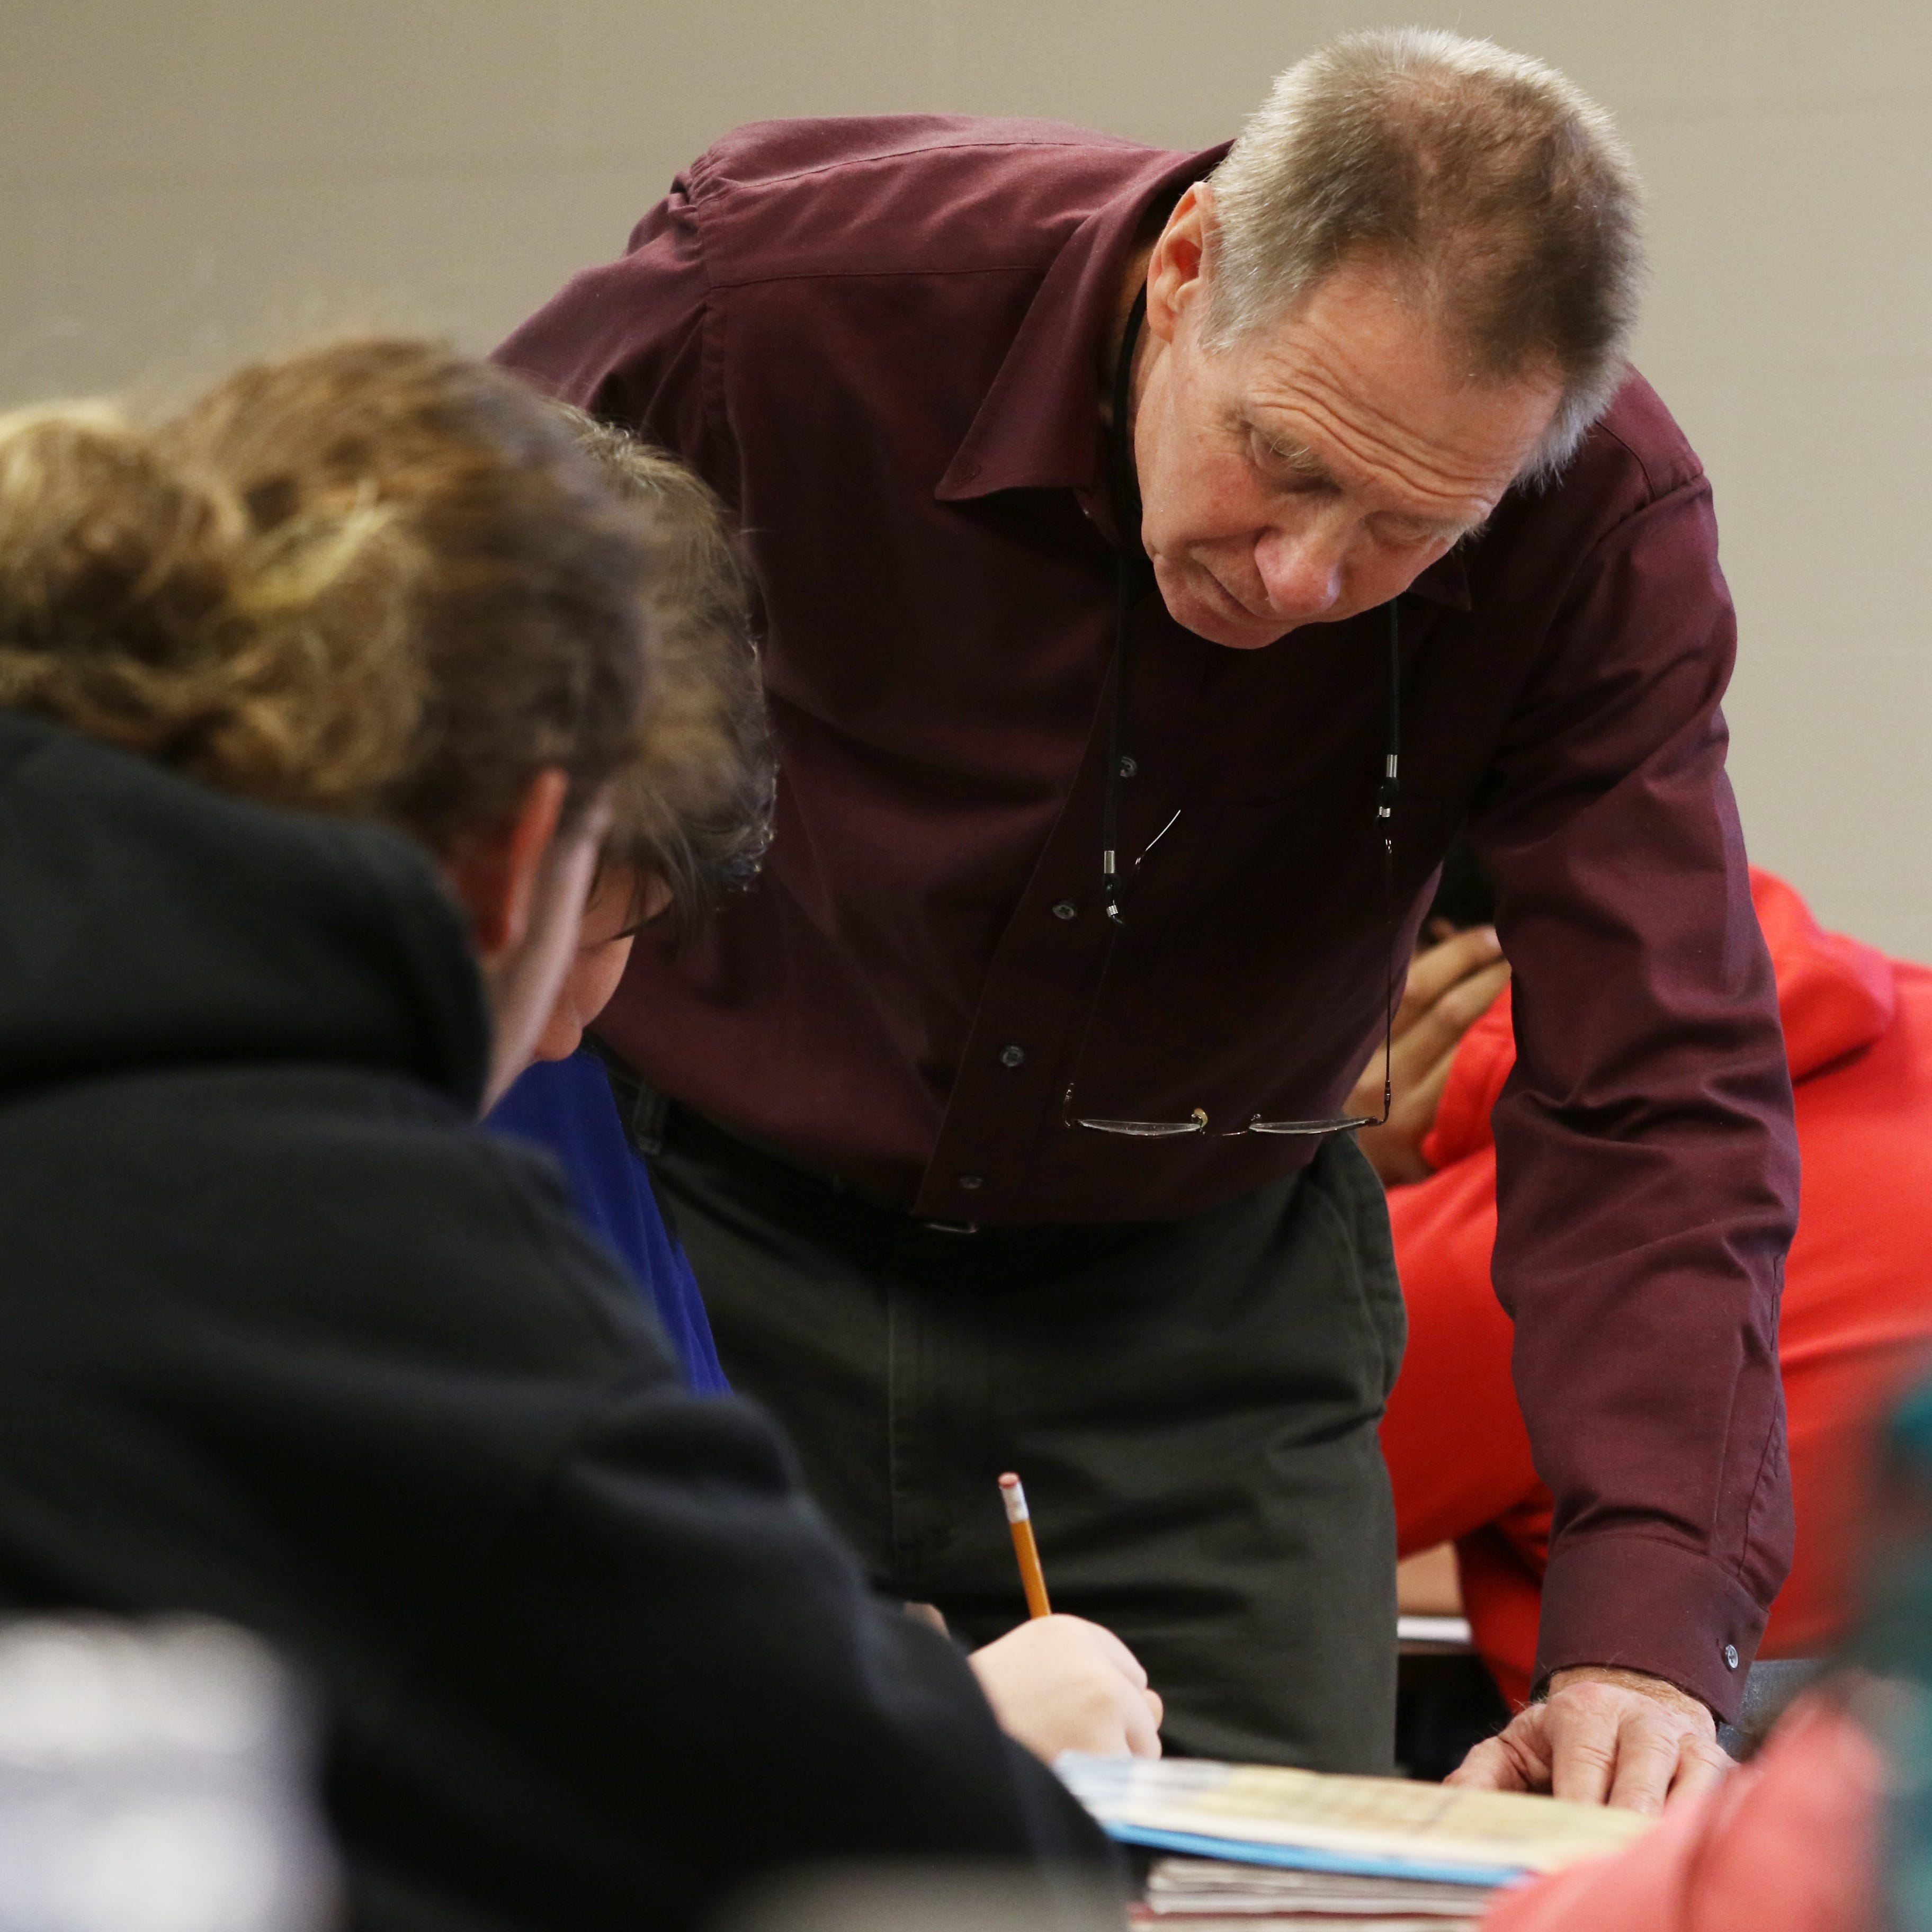 Looking to be a substitute teacher? Jobs are plentiful in Coshocton